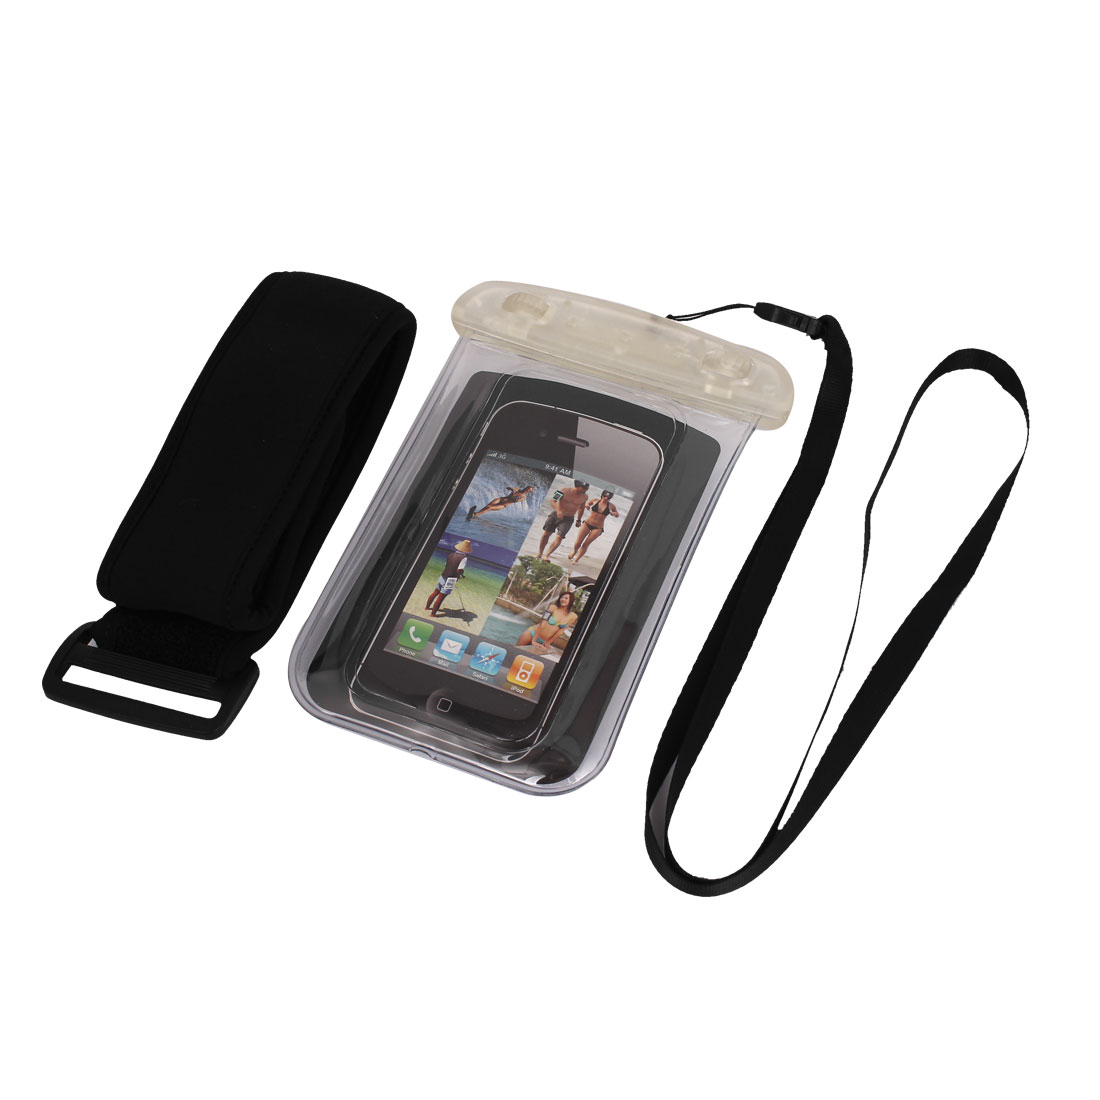 Underwater Waterproof Case Dry Bag Cover Pouch Clear + Arm Band for Cell Phone